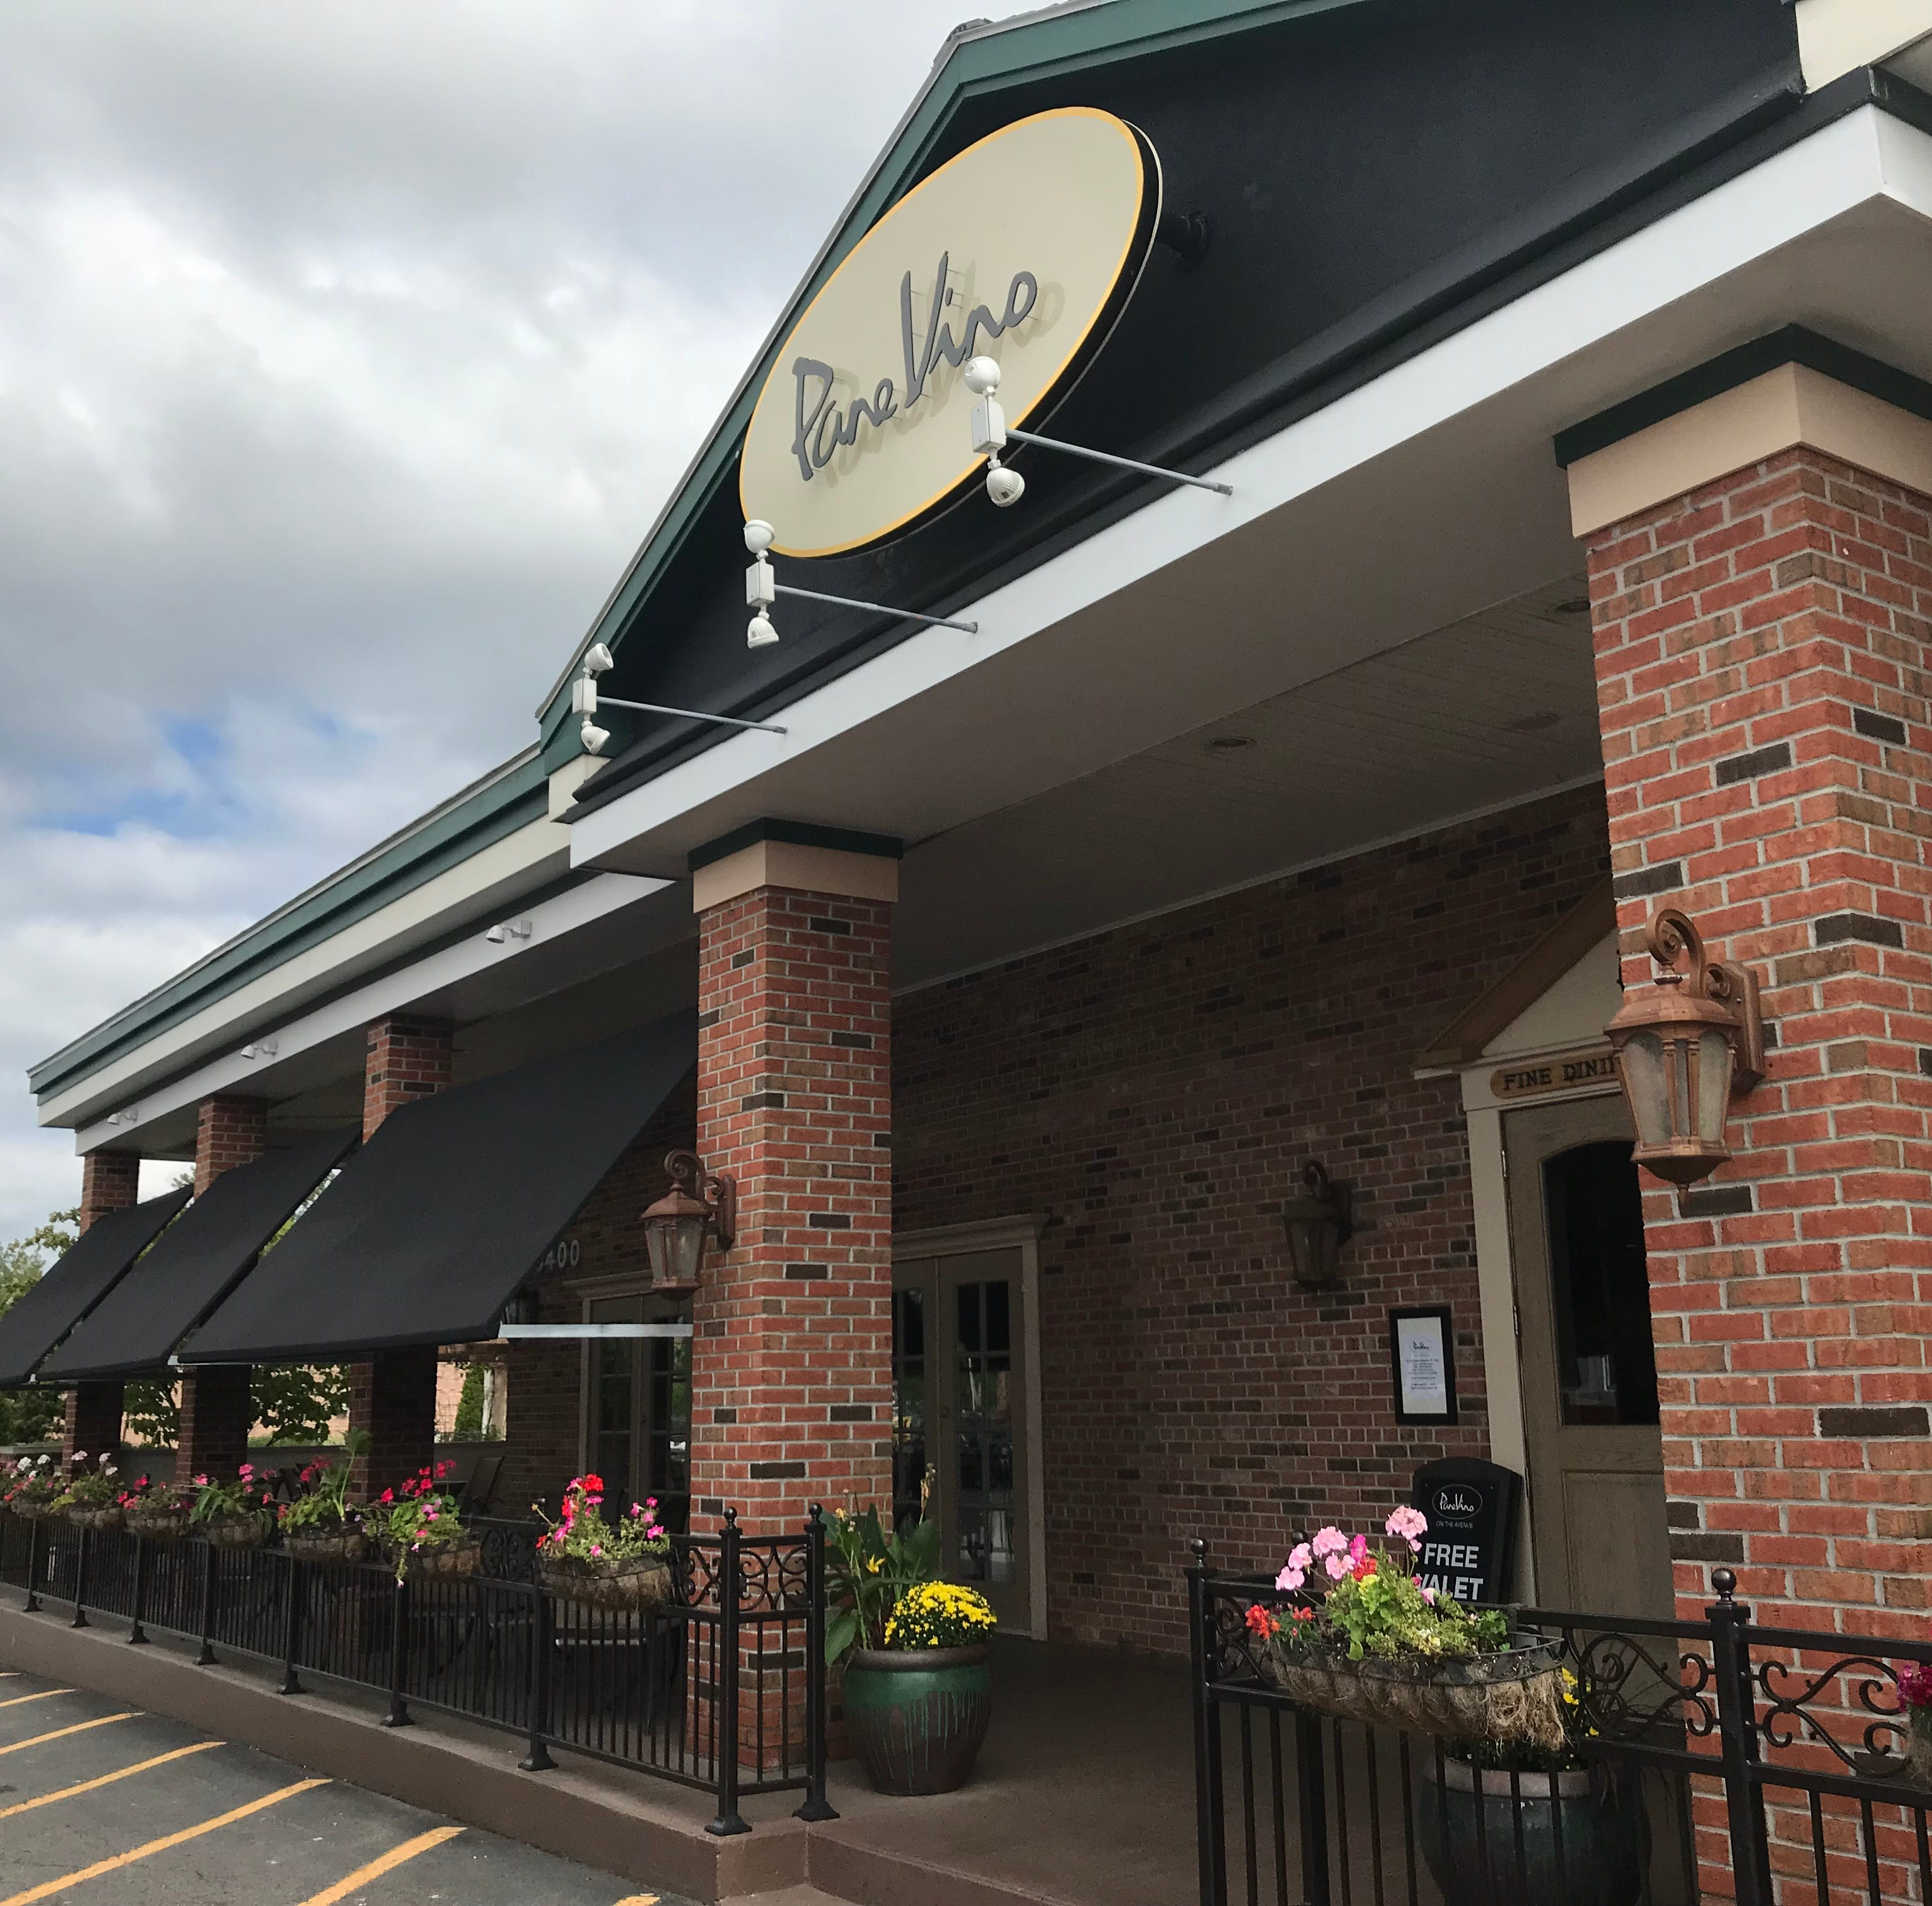 Pane Vino opens second location in Pittsford Colony Plaza